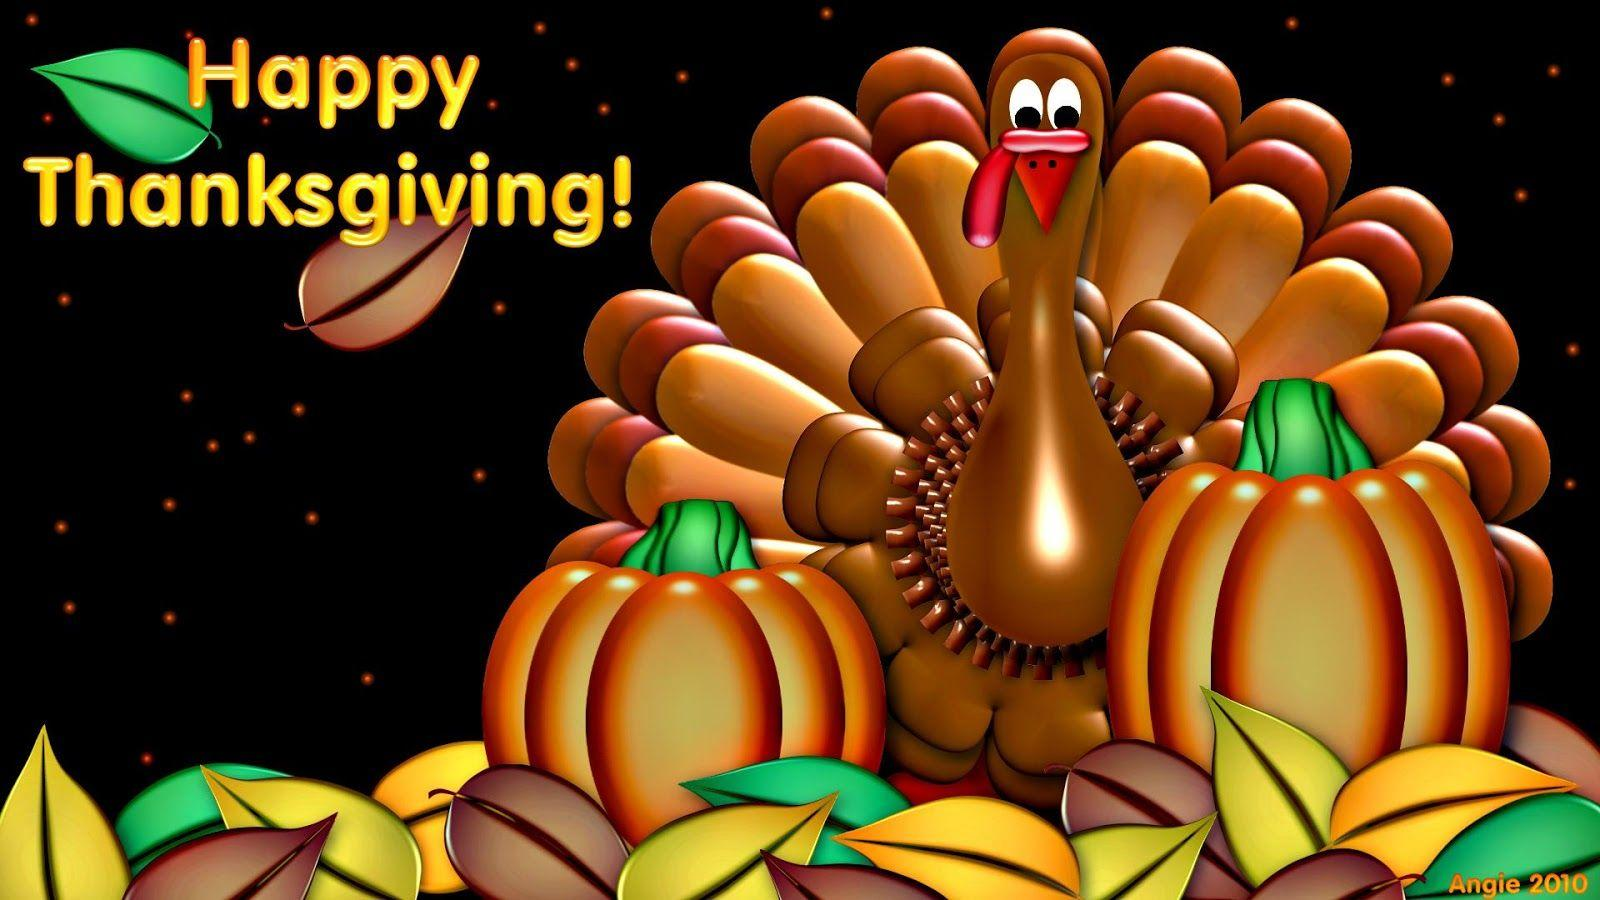 Happy Thanksgiving day HD Wallpapers 2017